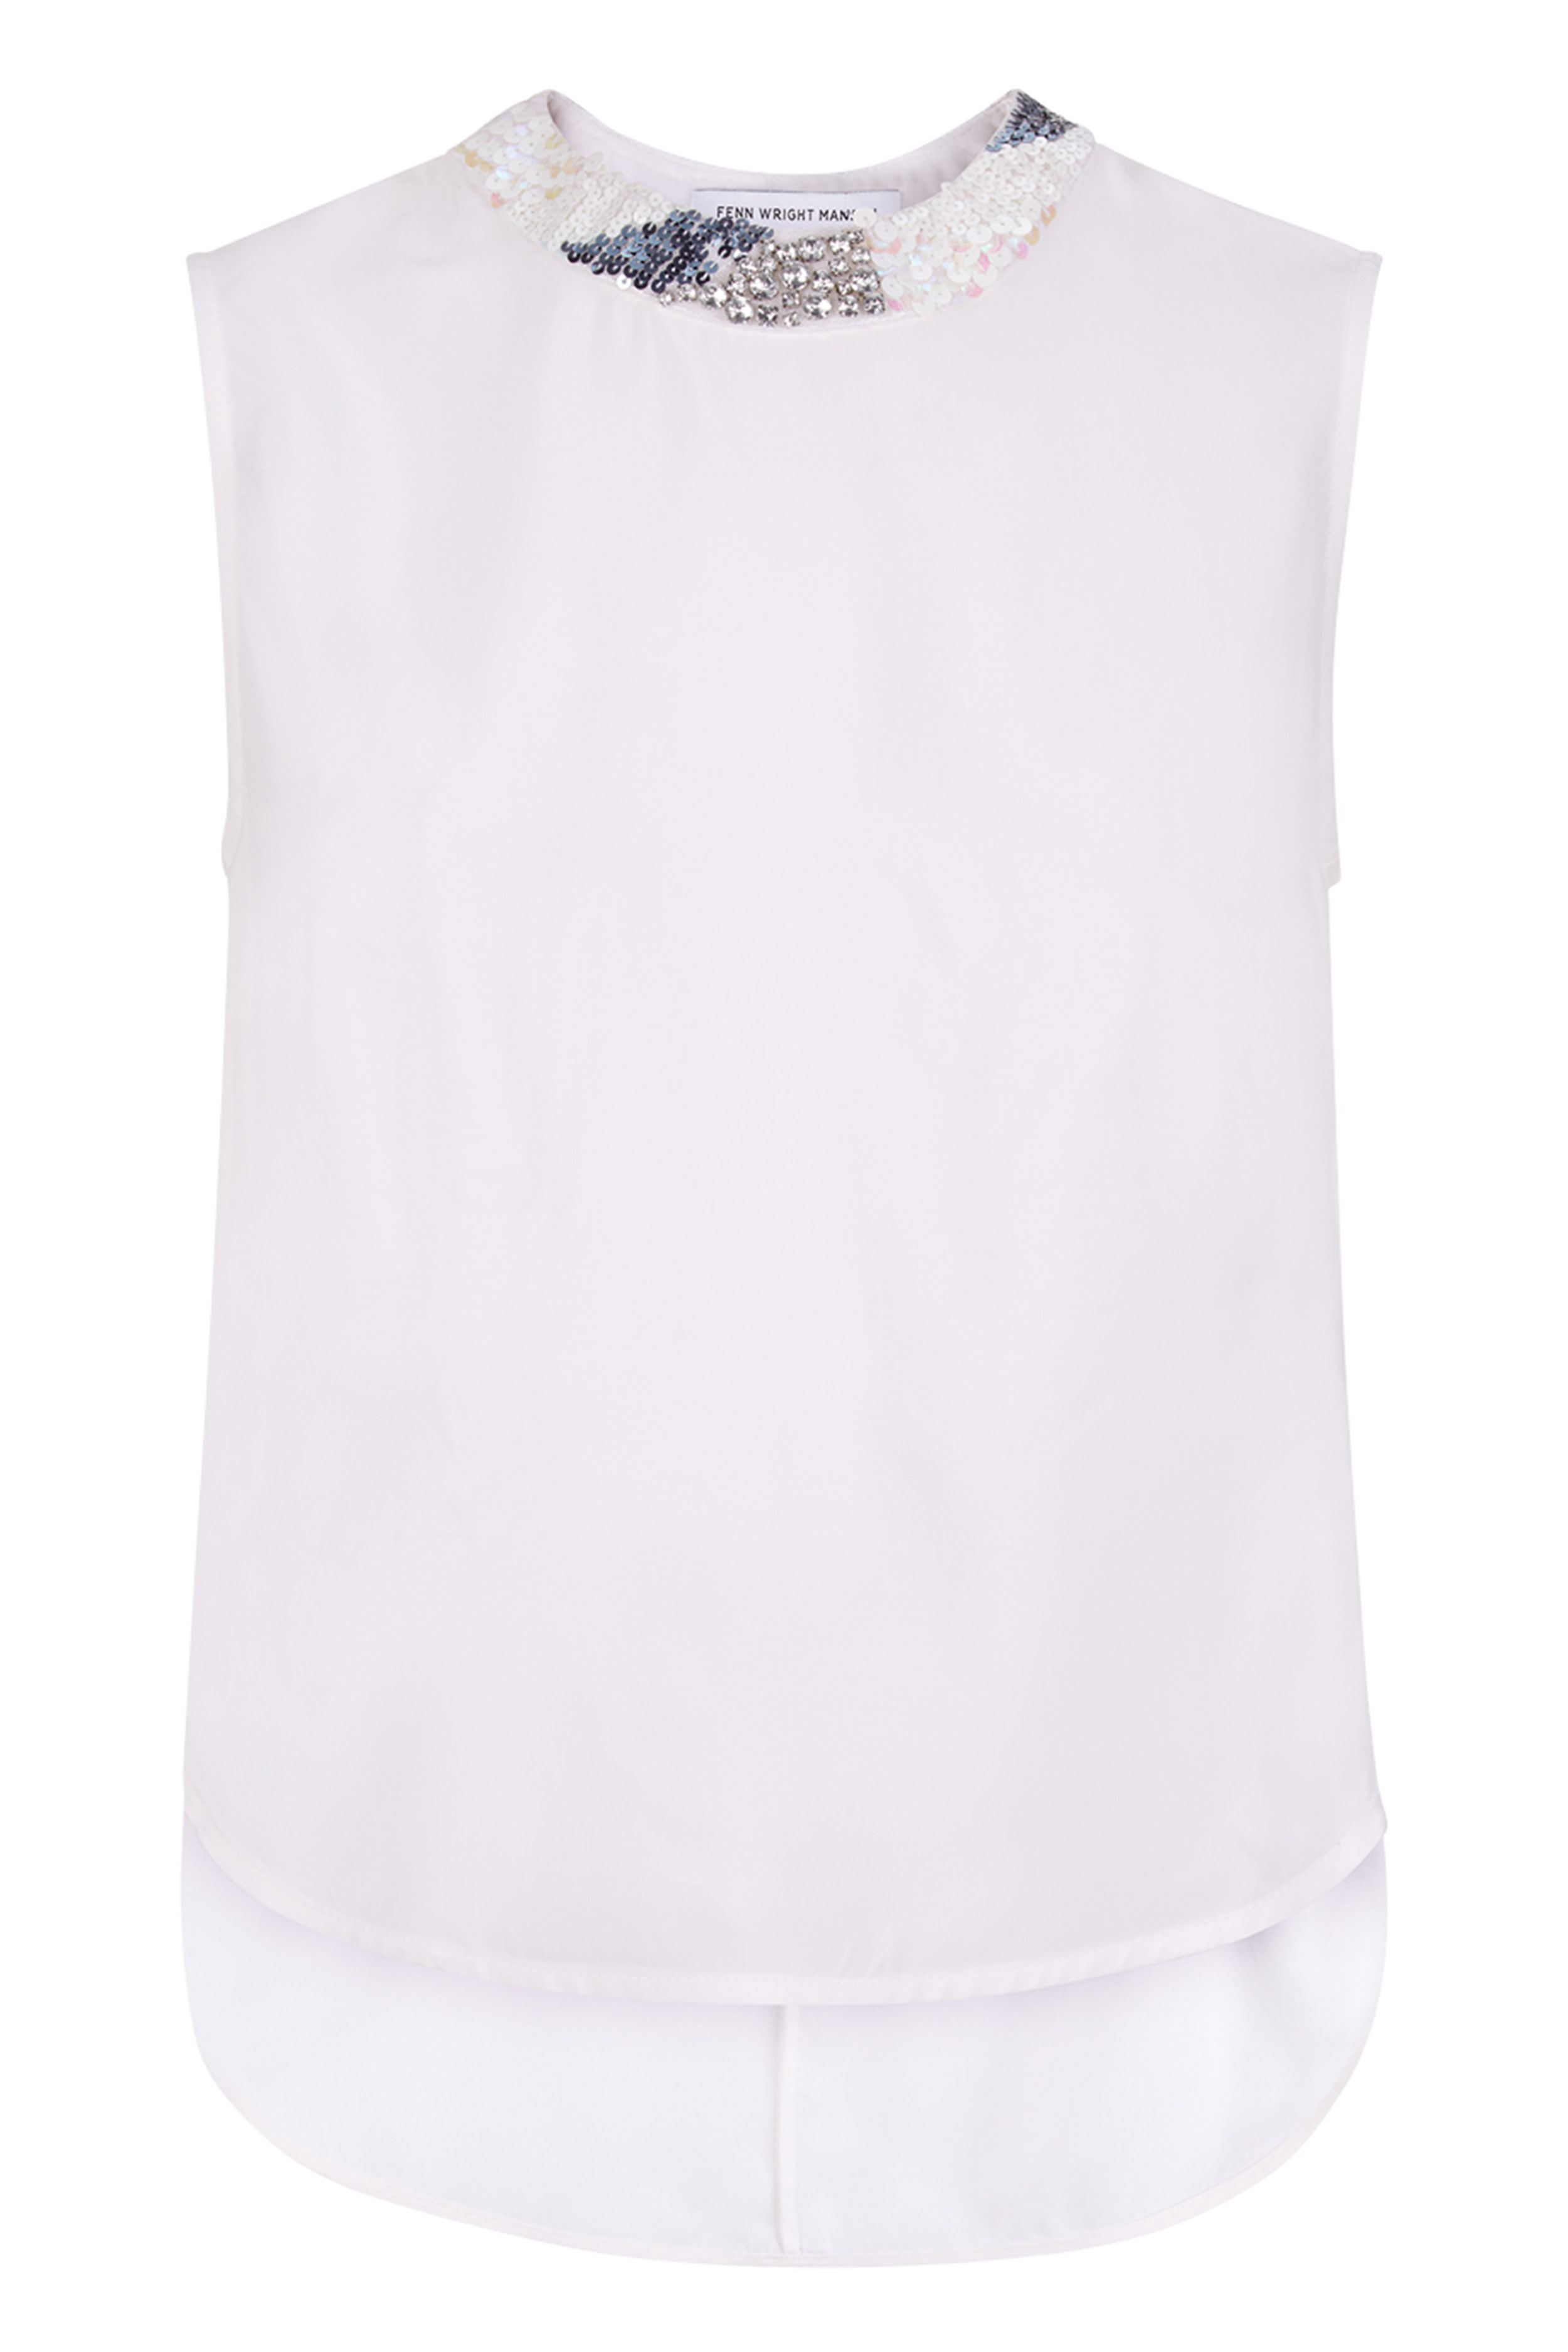 Fenn Wright Manson Verbena Top, White